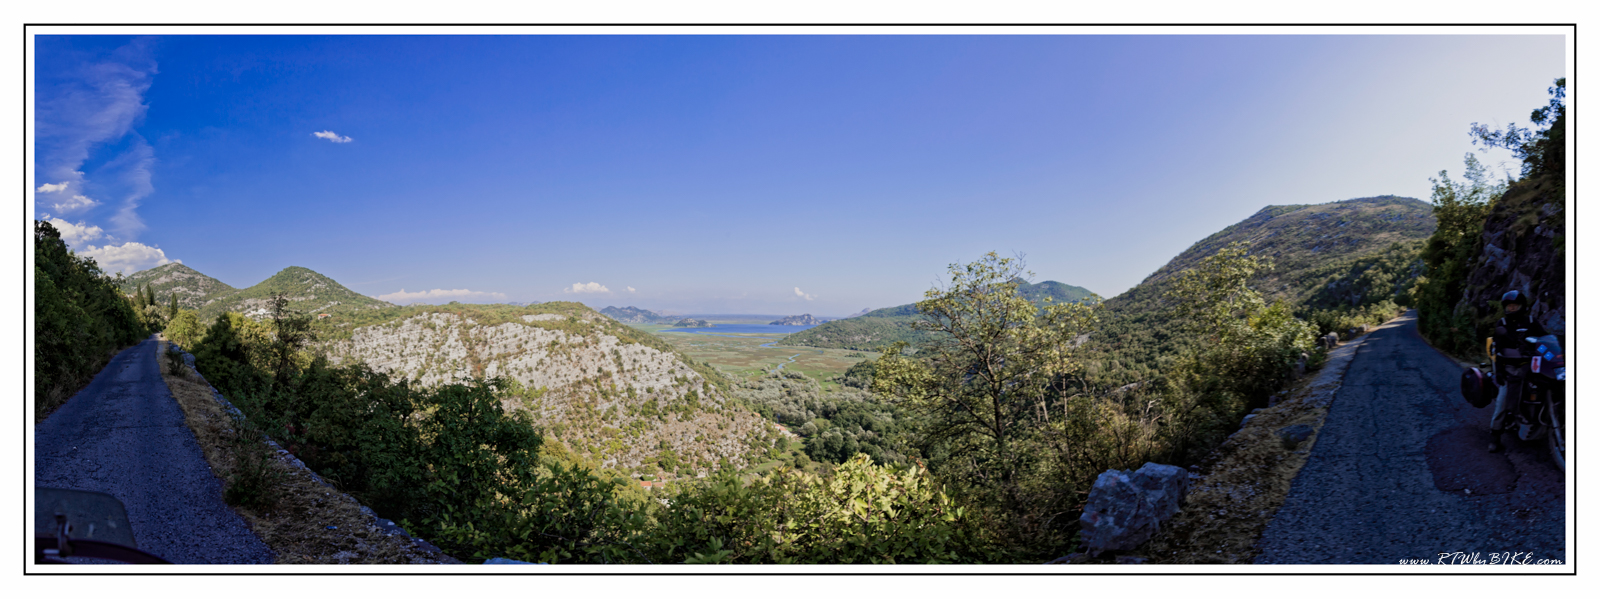 053__MG_1340-Pano-Edit_DxO_BLOG